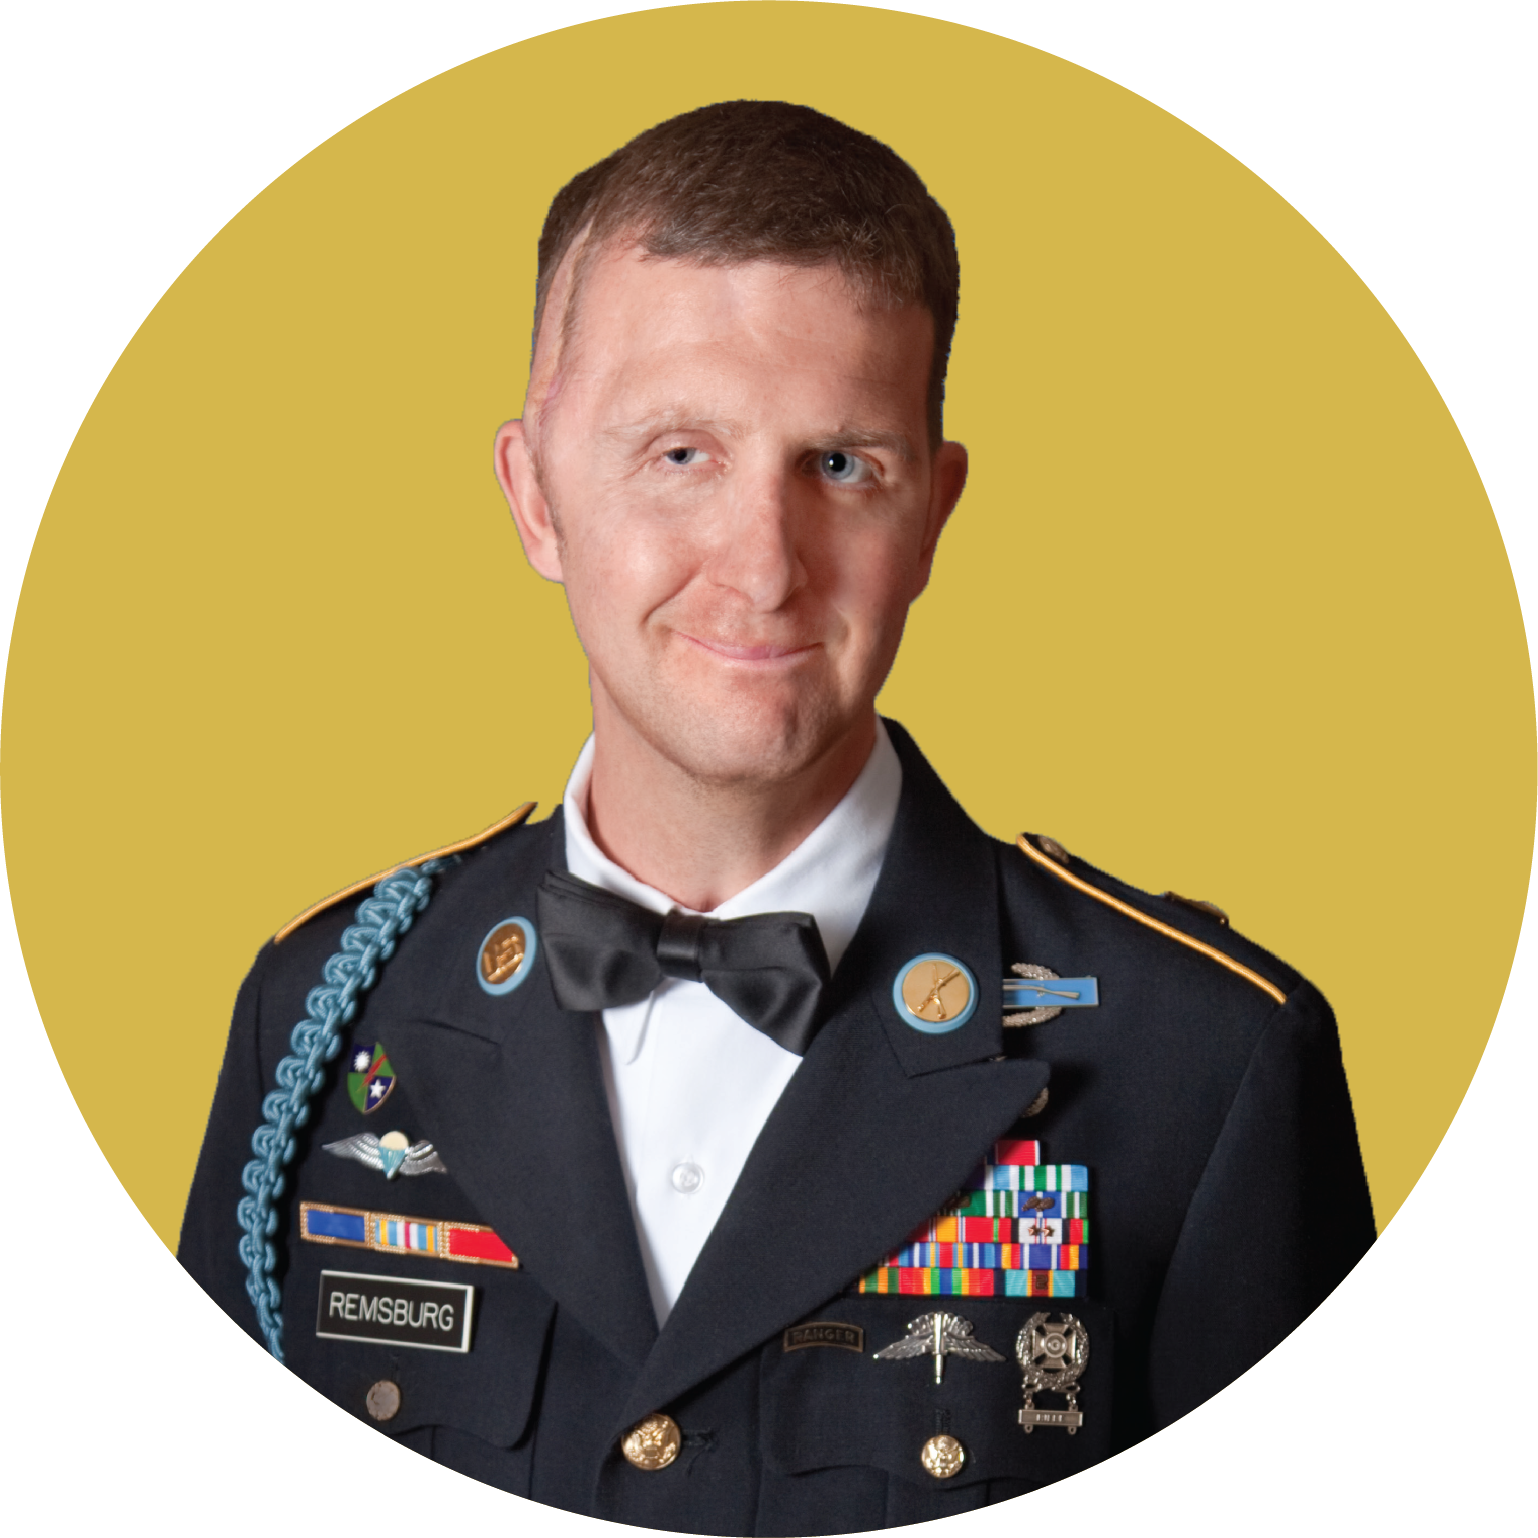 Sergeant First Class Cory Remsburg, our DrivenToDrive program,